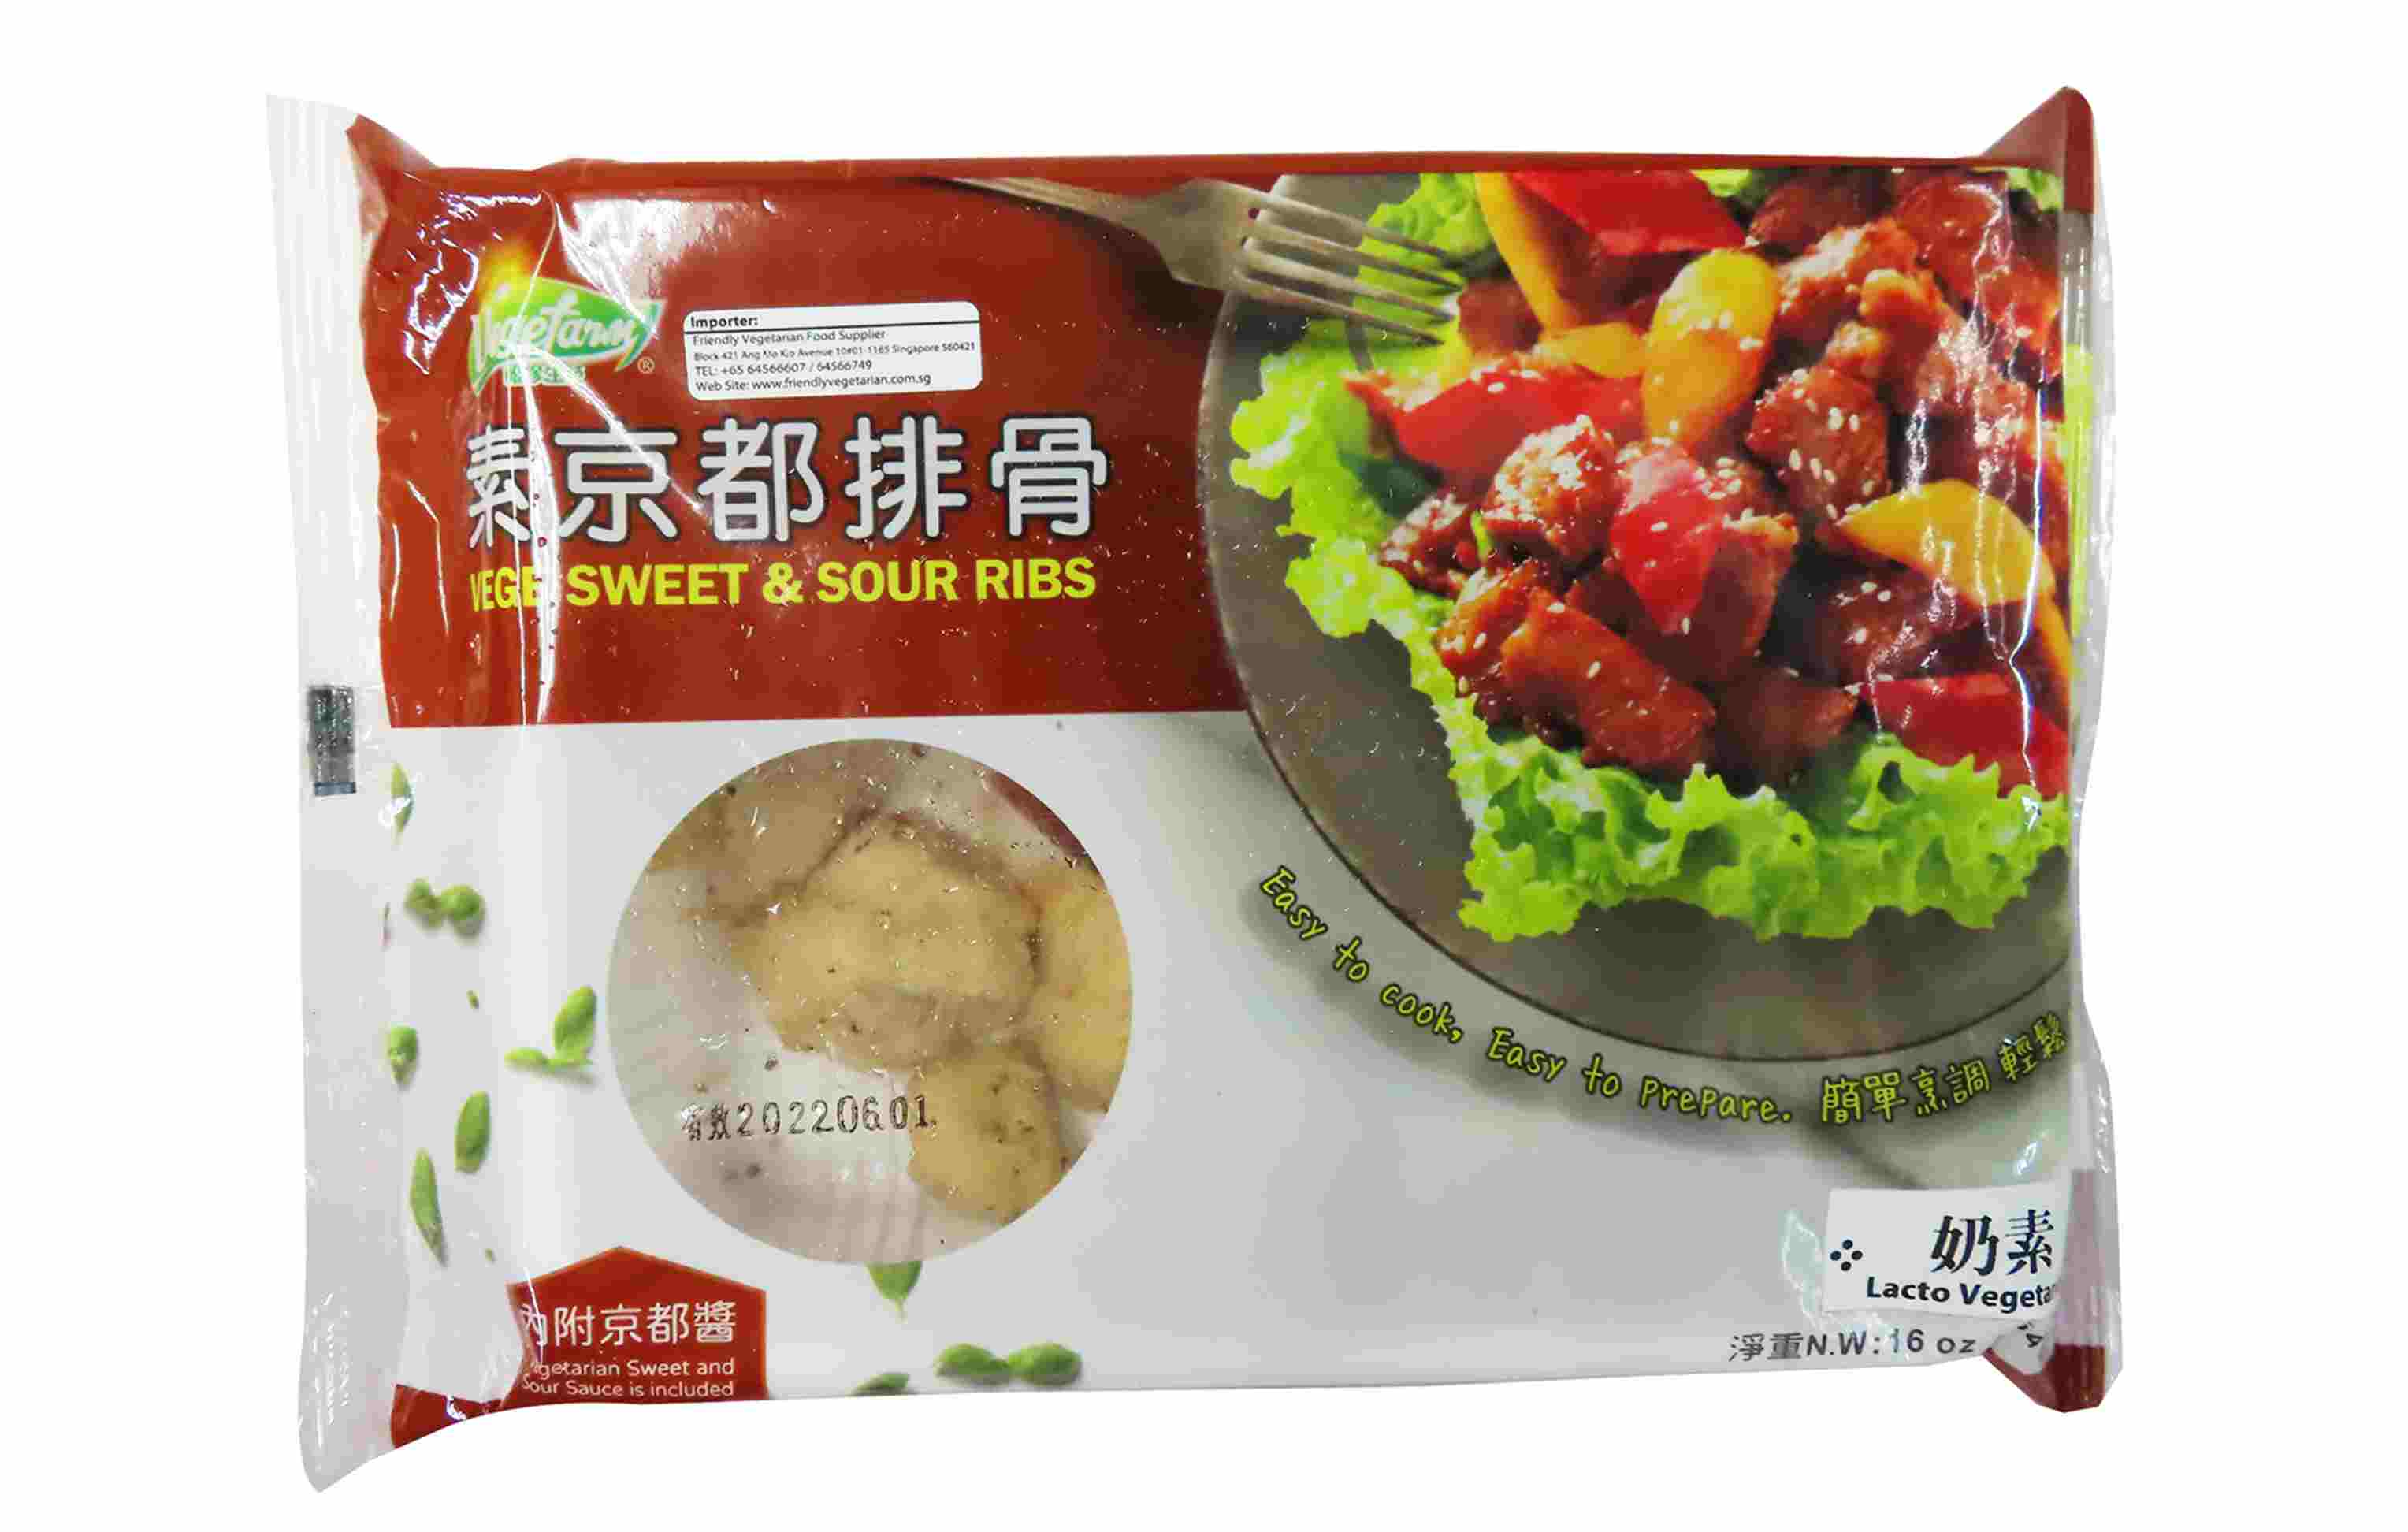 Image VegeFarm Sweet n Sour Pork 松珍-京都排骨-454grams